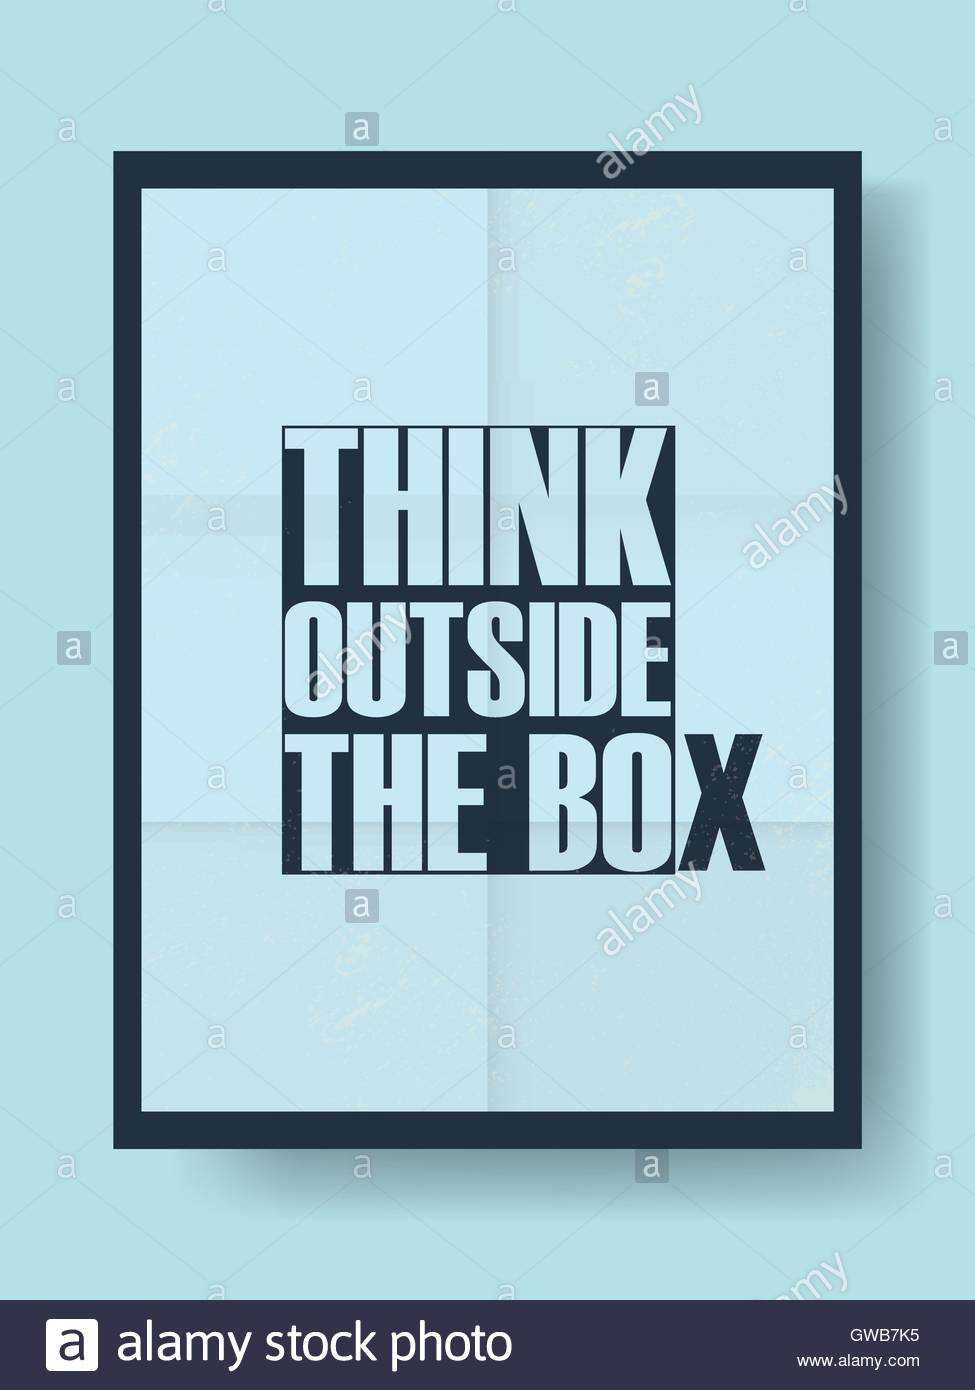 think outside the box motivational poster with creative typography quote